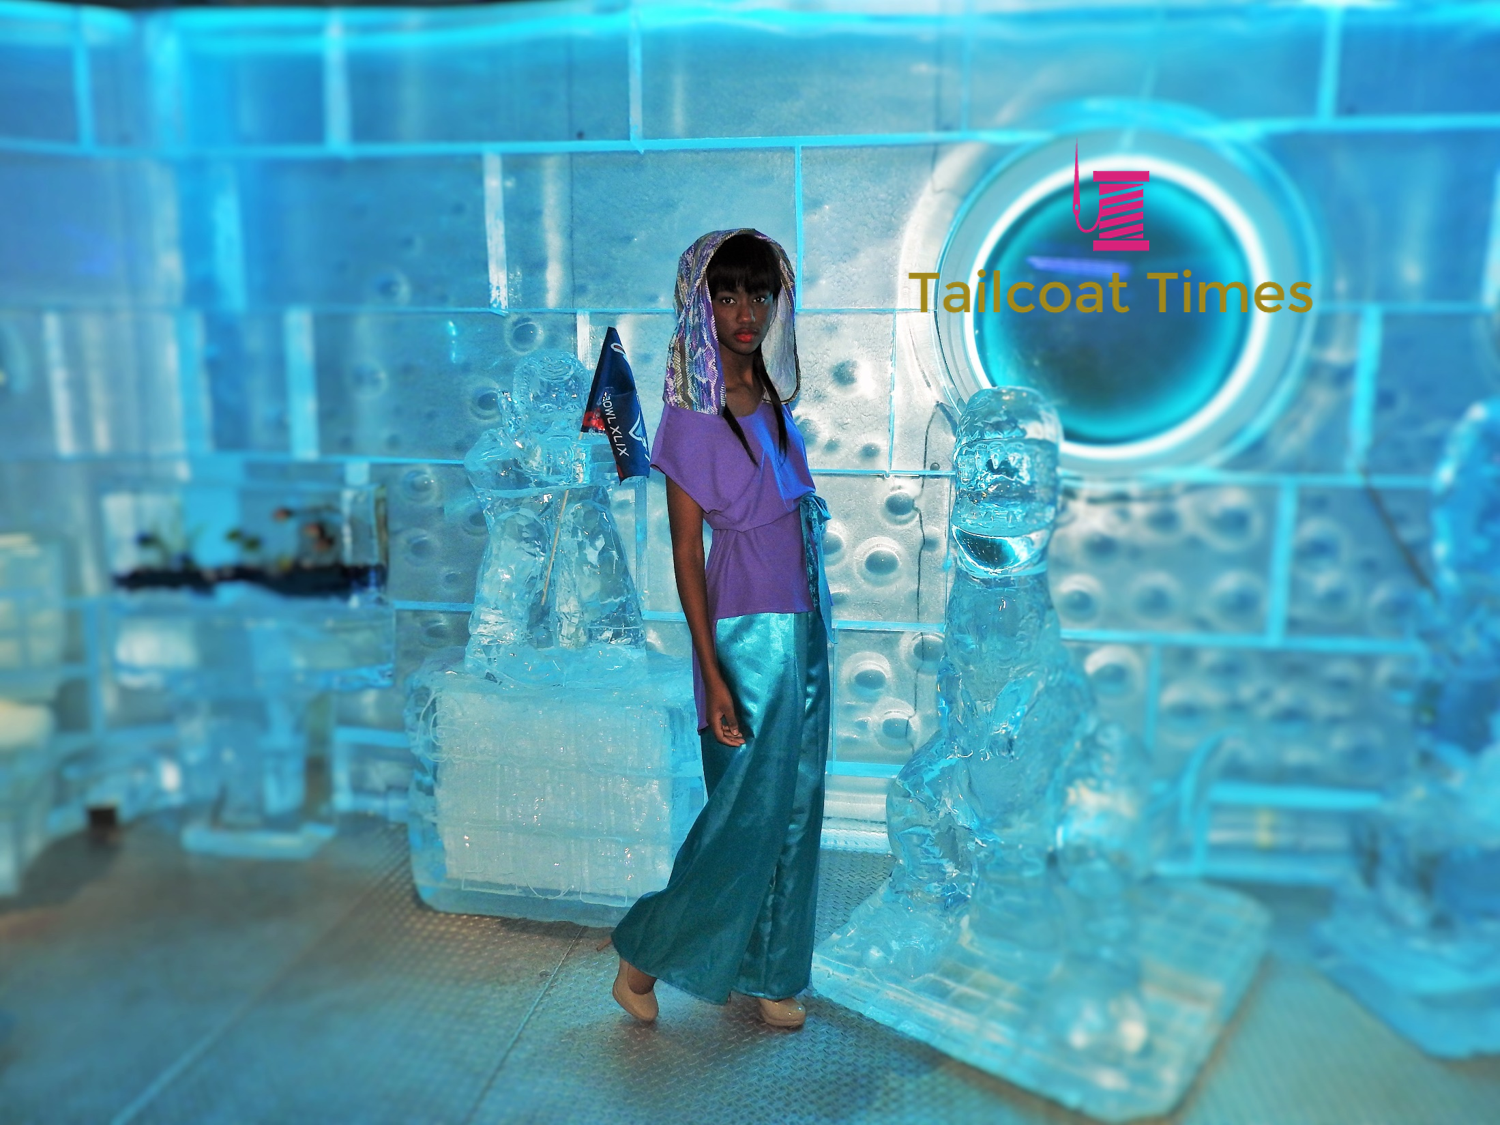 HYPEFashions-RunwayCouture Ice-Modelhood TT.png